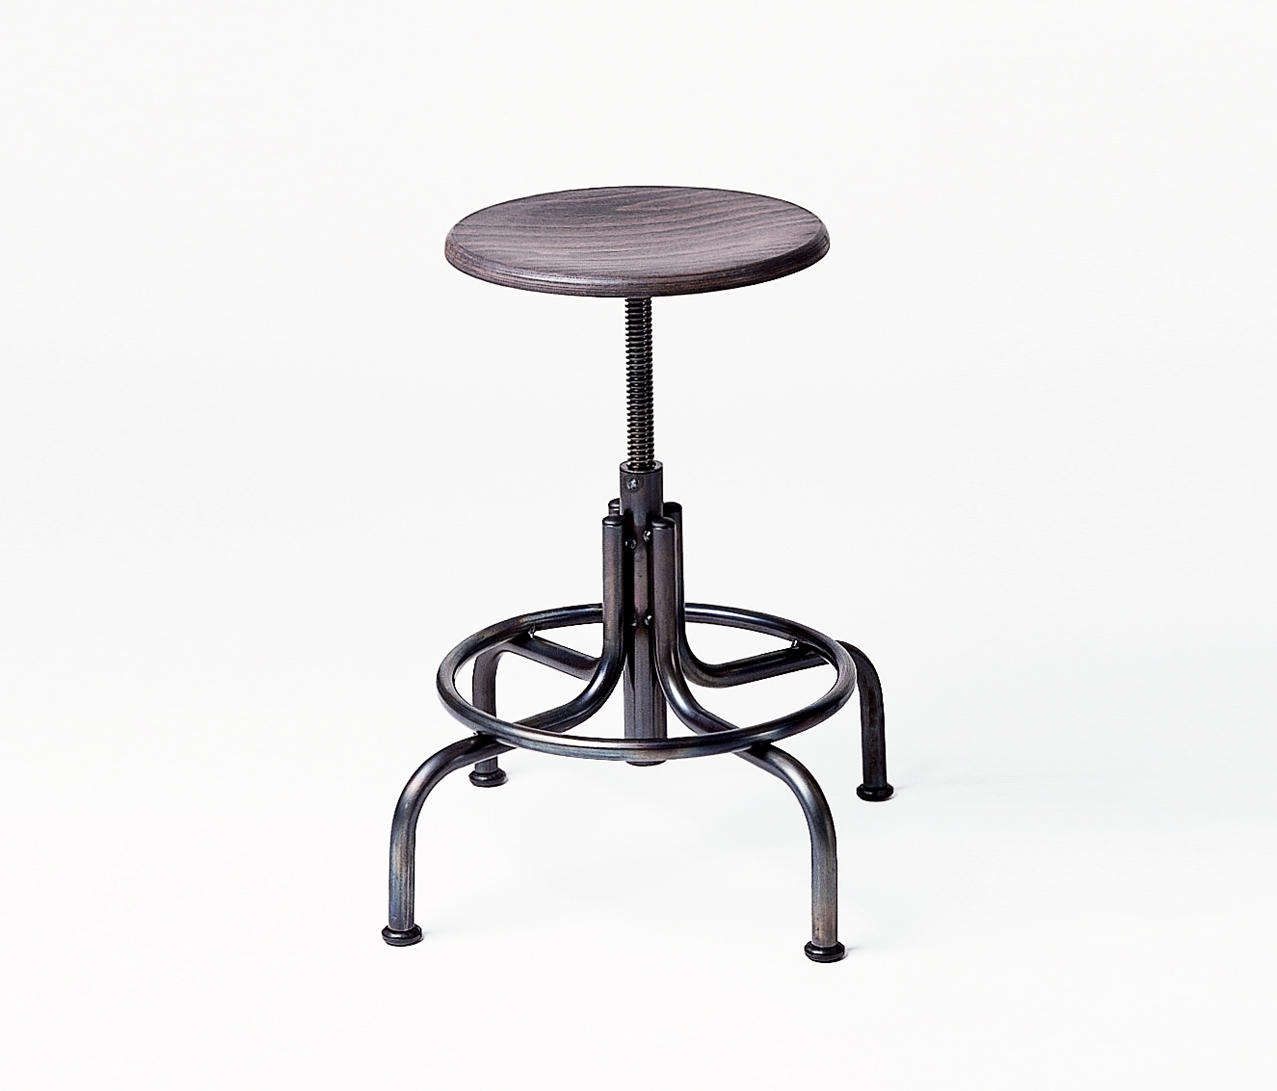 industrie stool swivel stools from lambert architonic. Black Bedroom Furniture Sets. Home Design Ideas